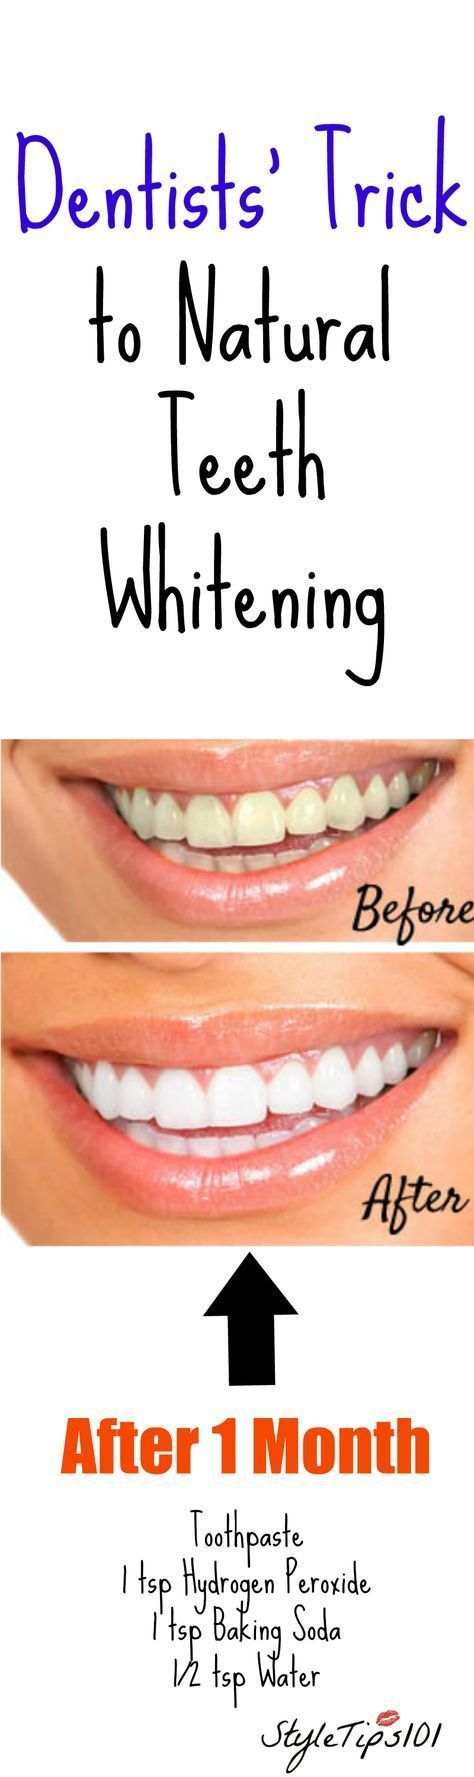 how to whiten teeth #Treatingskindarkspots